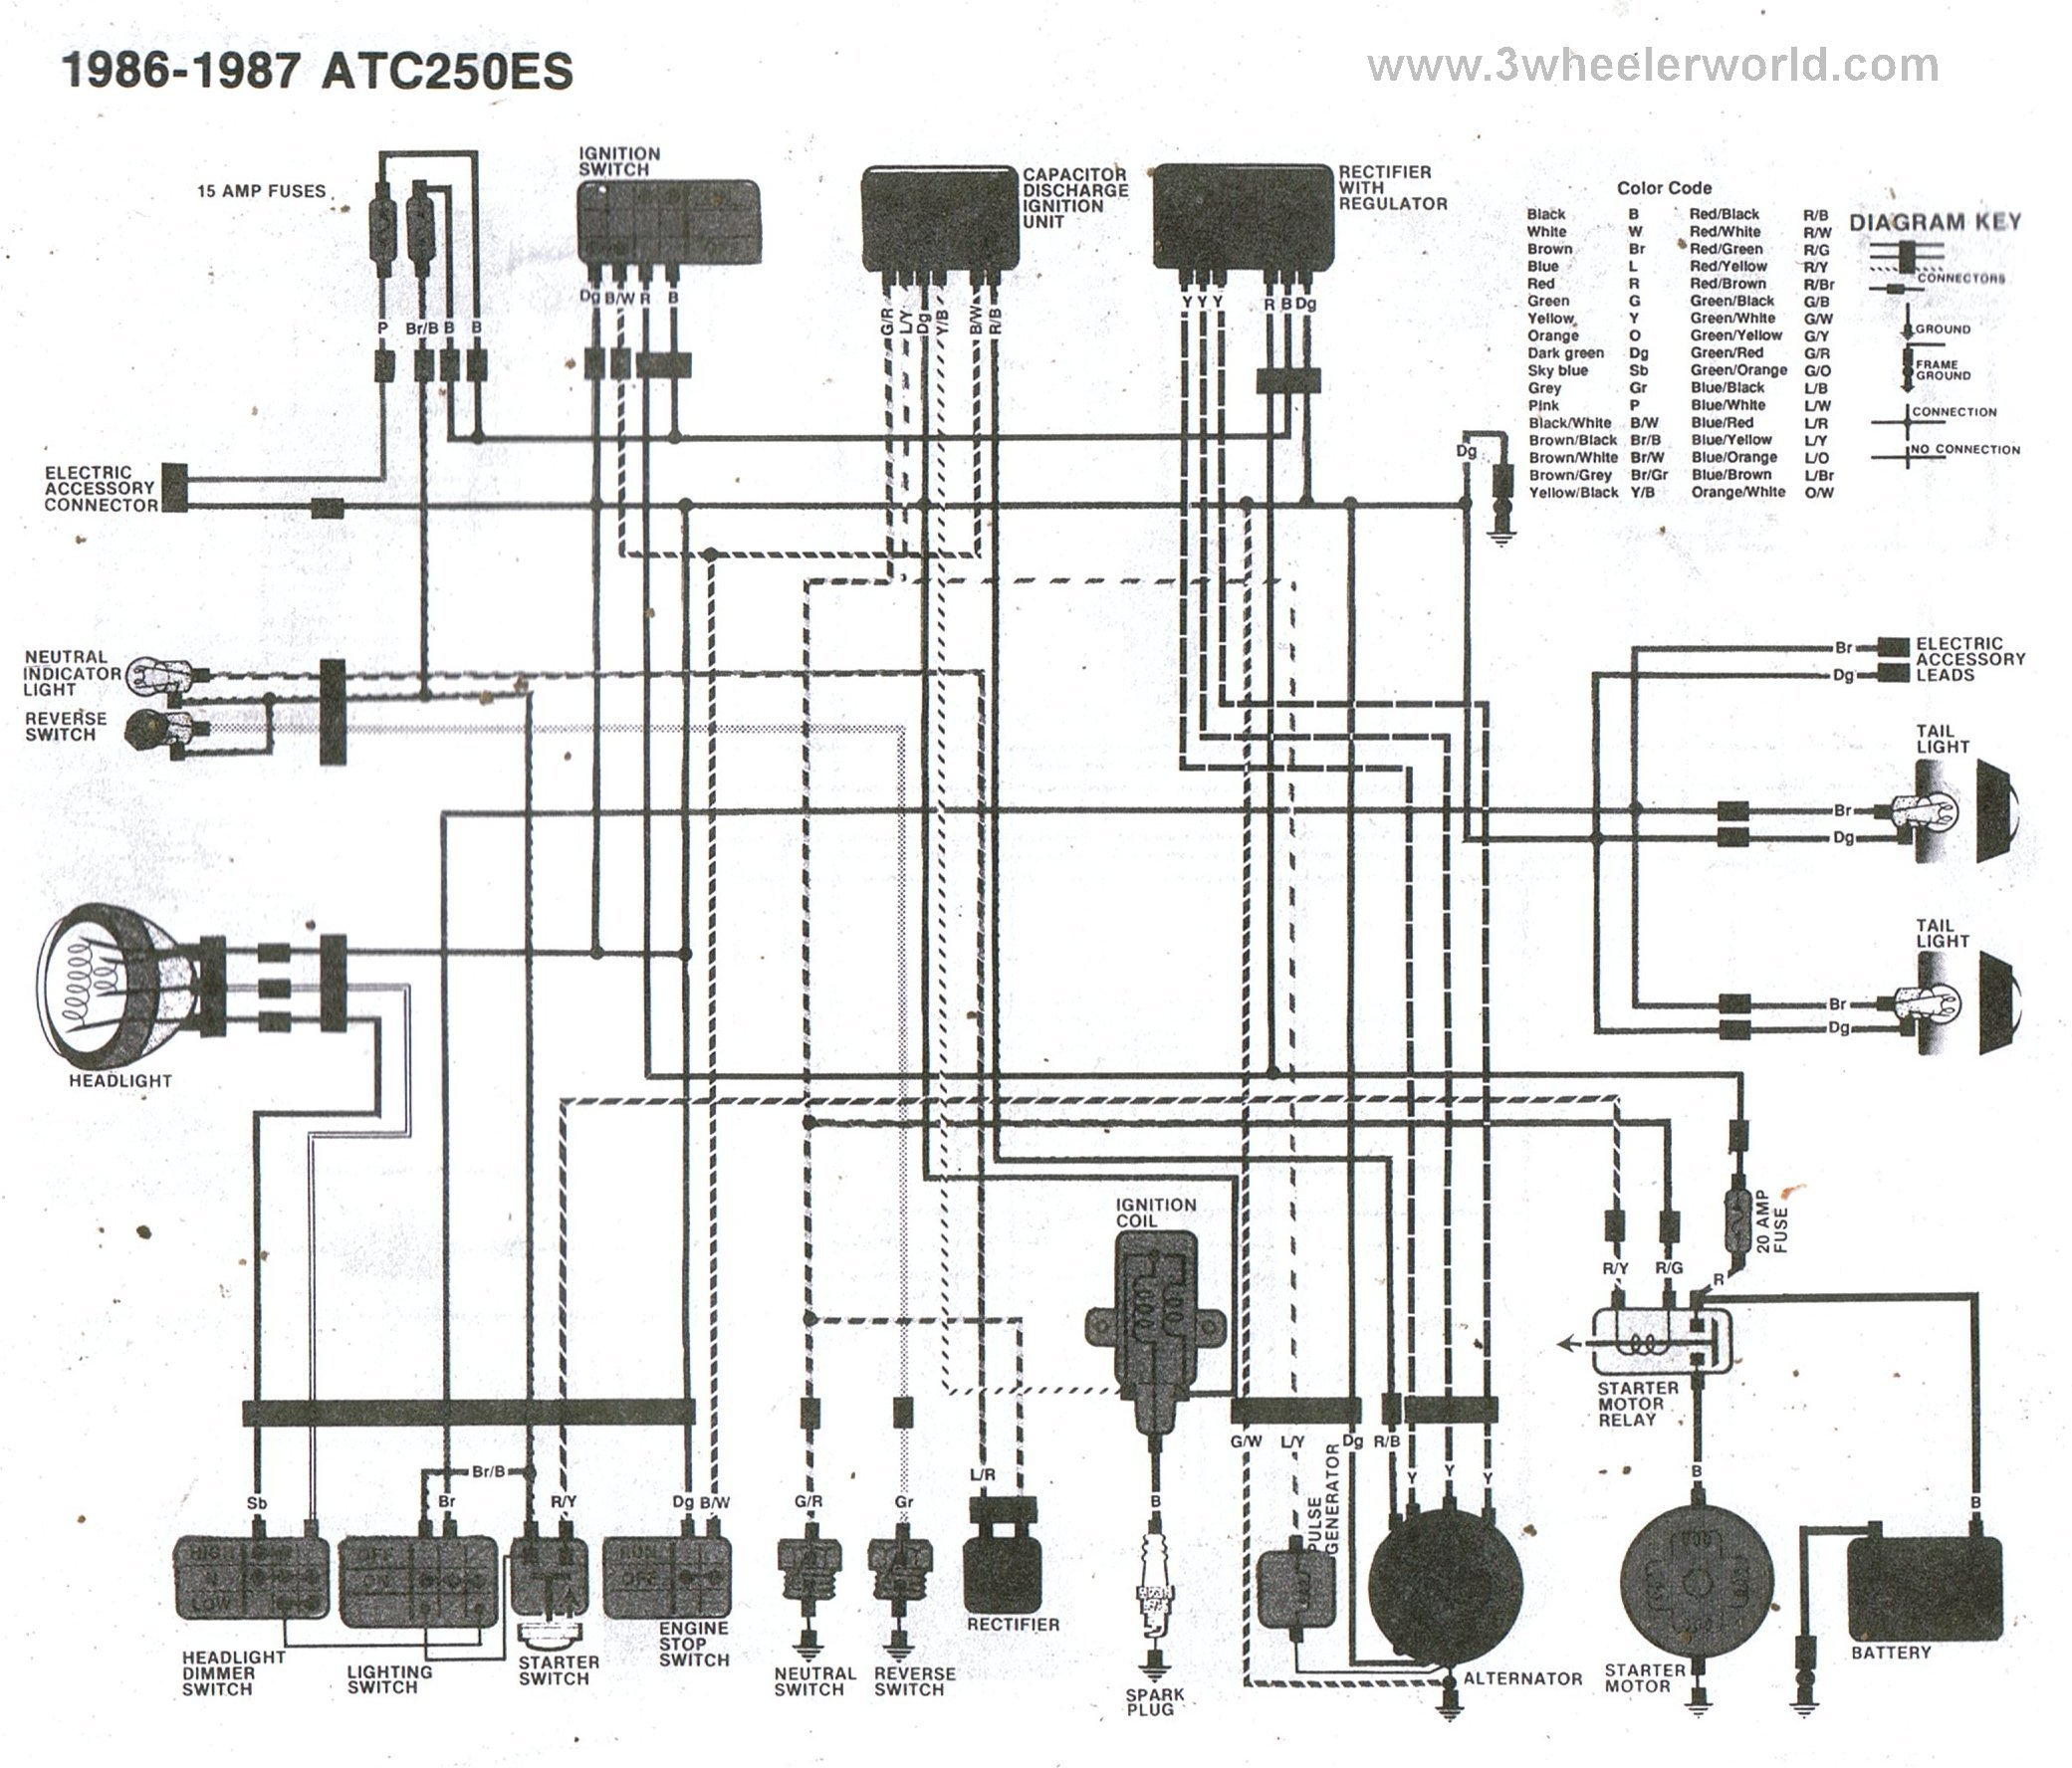 ATC250ESx86Thru87 3 wheeler world tech help honda wiring diagrams honda atv 300 fourtrax 1989 wiring diagram at edmiracle.co